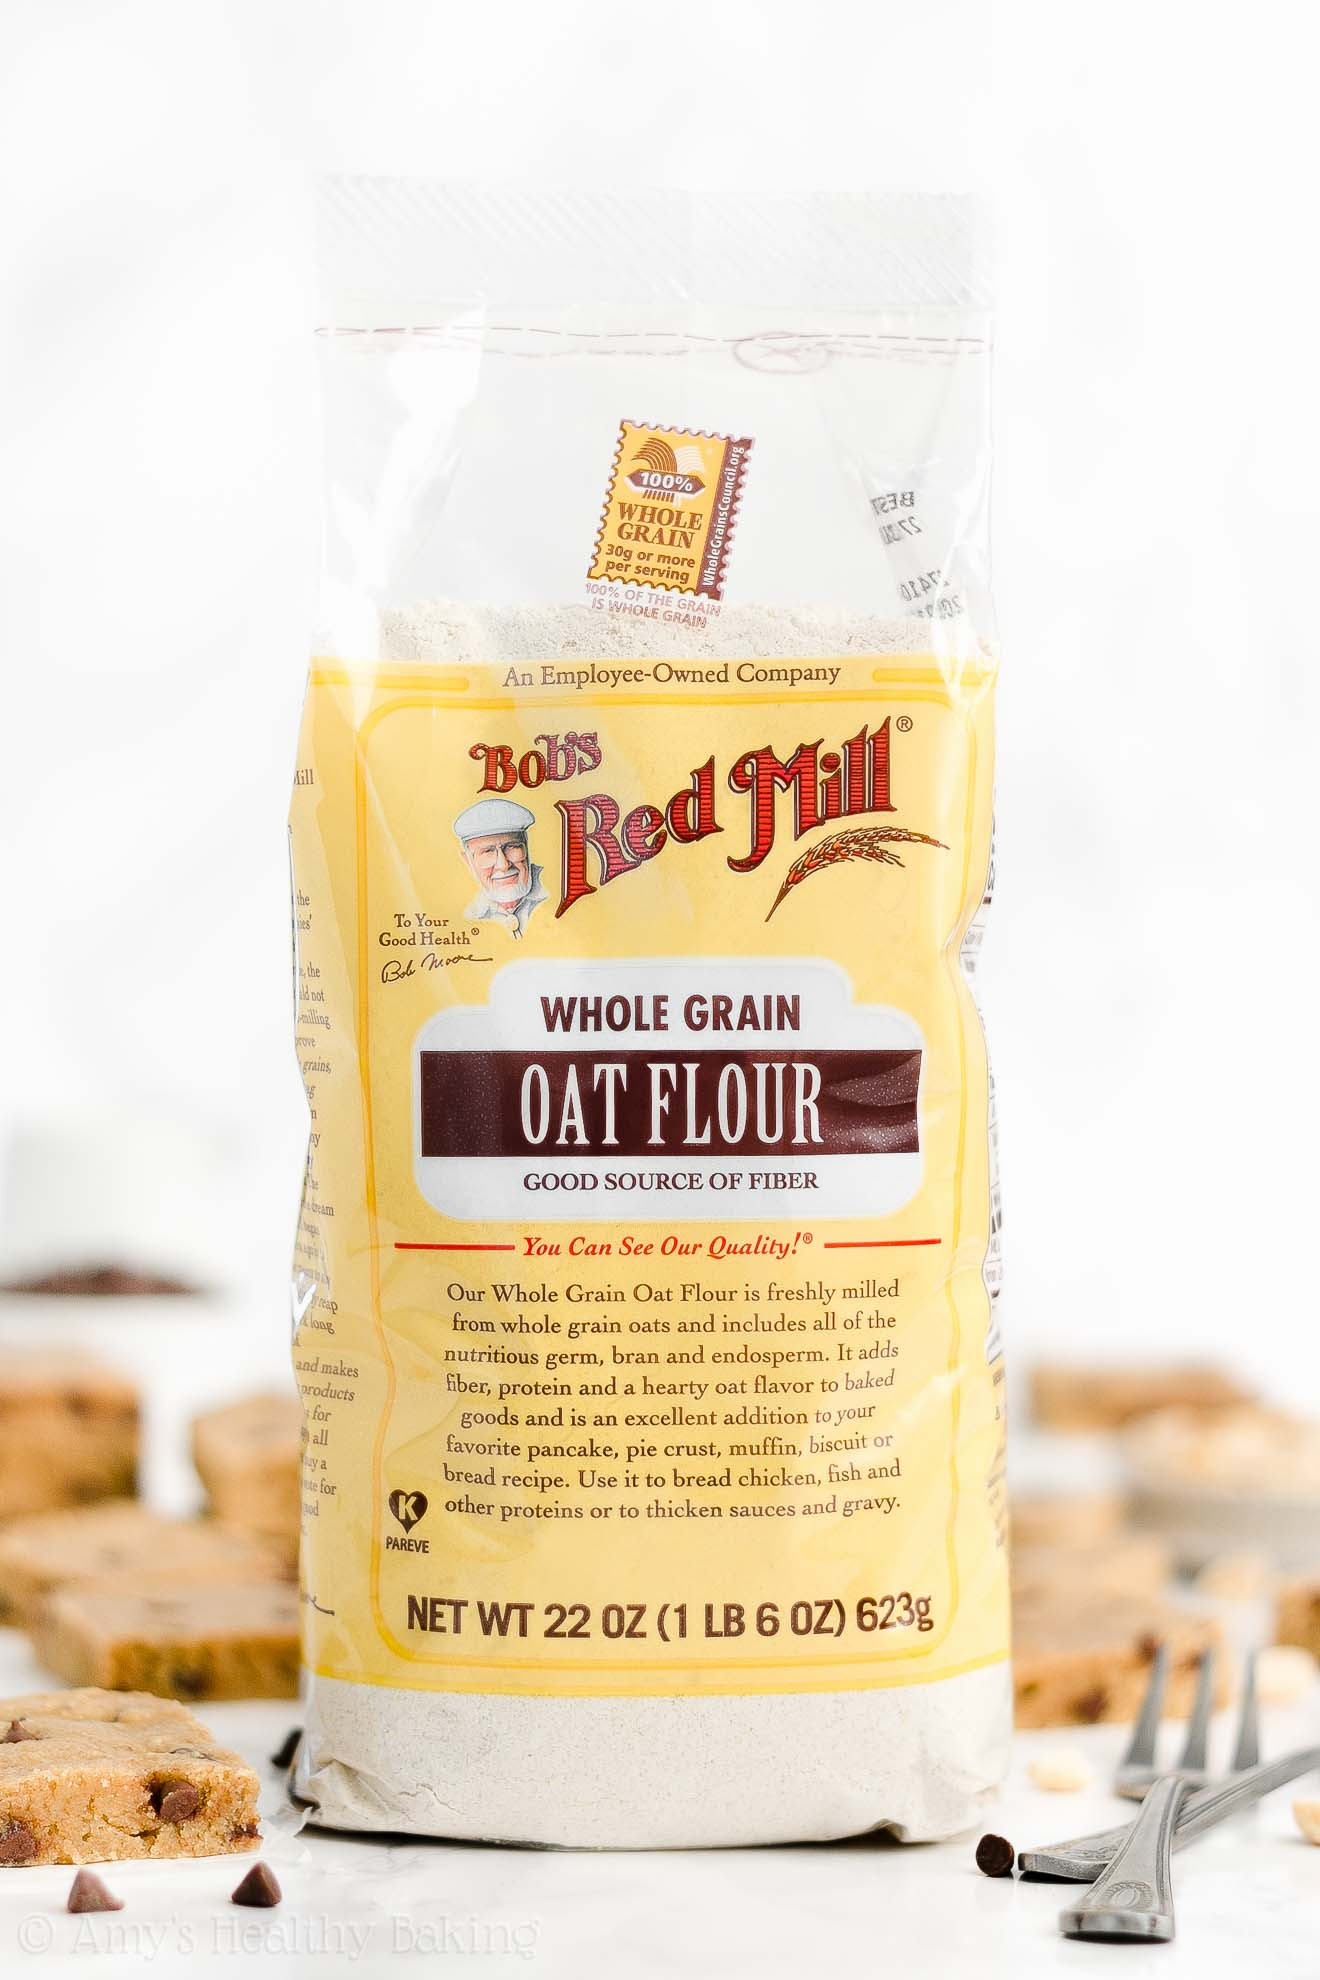 Bob's Red Mill Whole Grain Oat Flour for Healthy Chocolate Chip Peanut Butter Cookie Bars